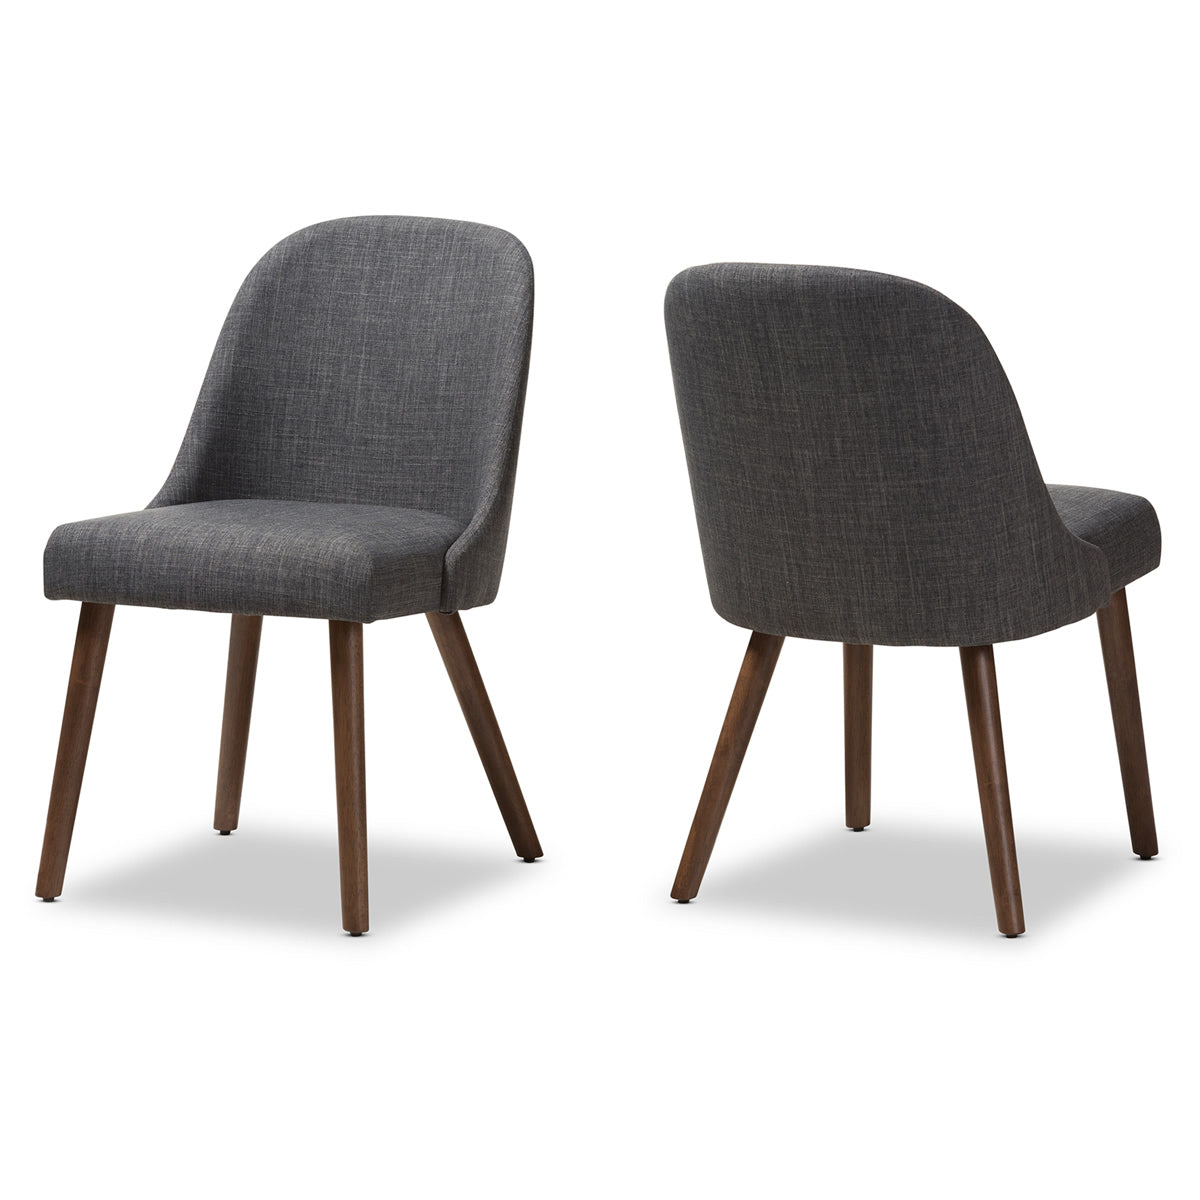 Baxton Studio Cody Mid-Century Modern Dark Grey Fabric Upholstered Walnut Finished Wood Dining Chair (Set of 2) Baxton Studio-dining chair-Minimal And Modern - 1